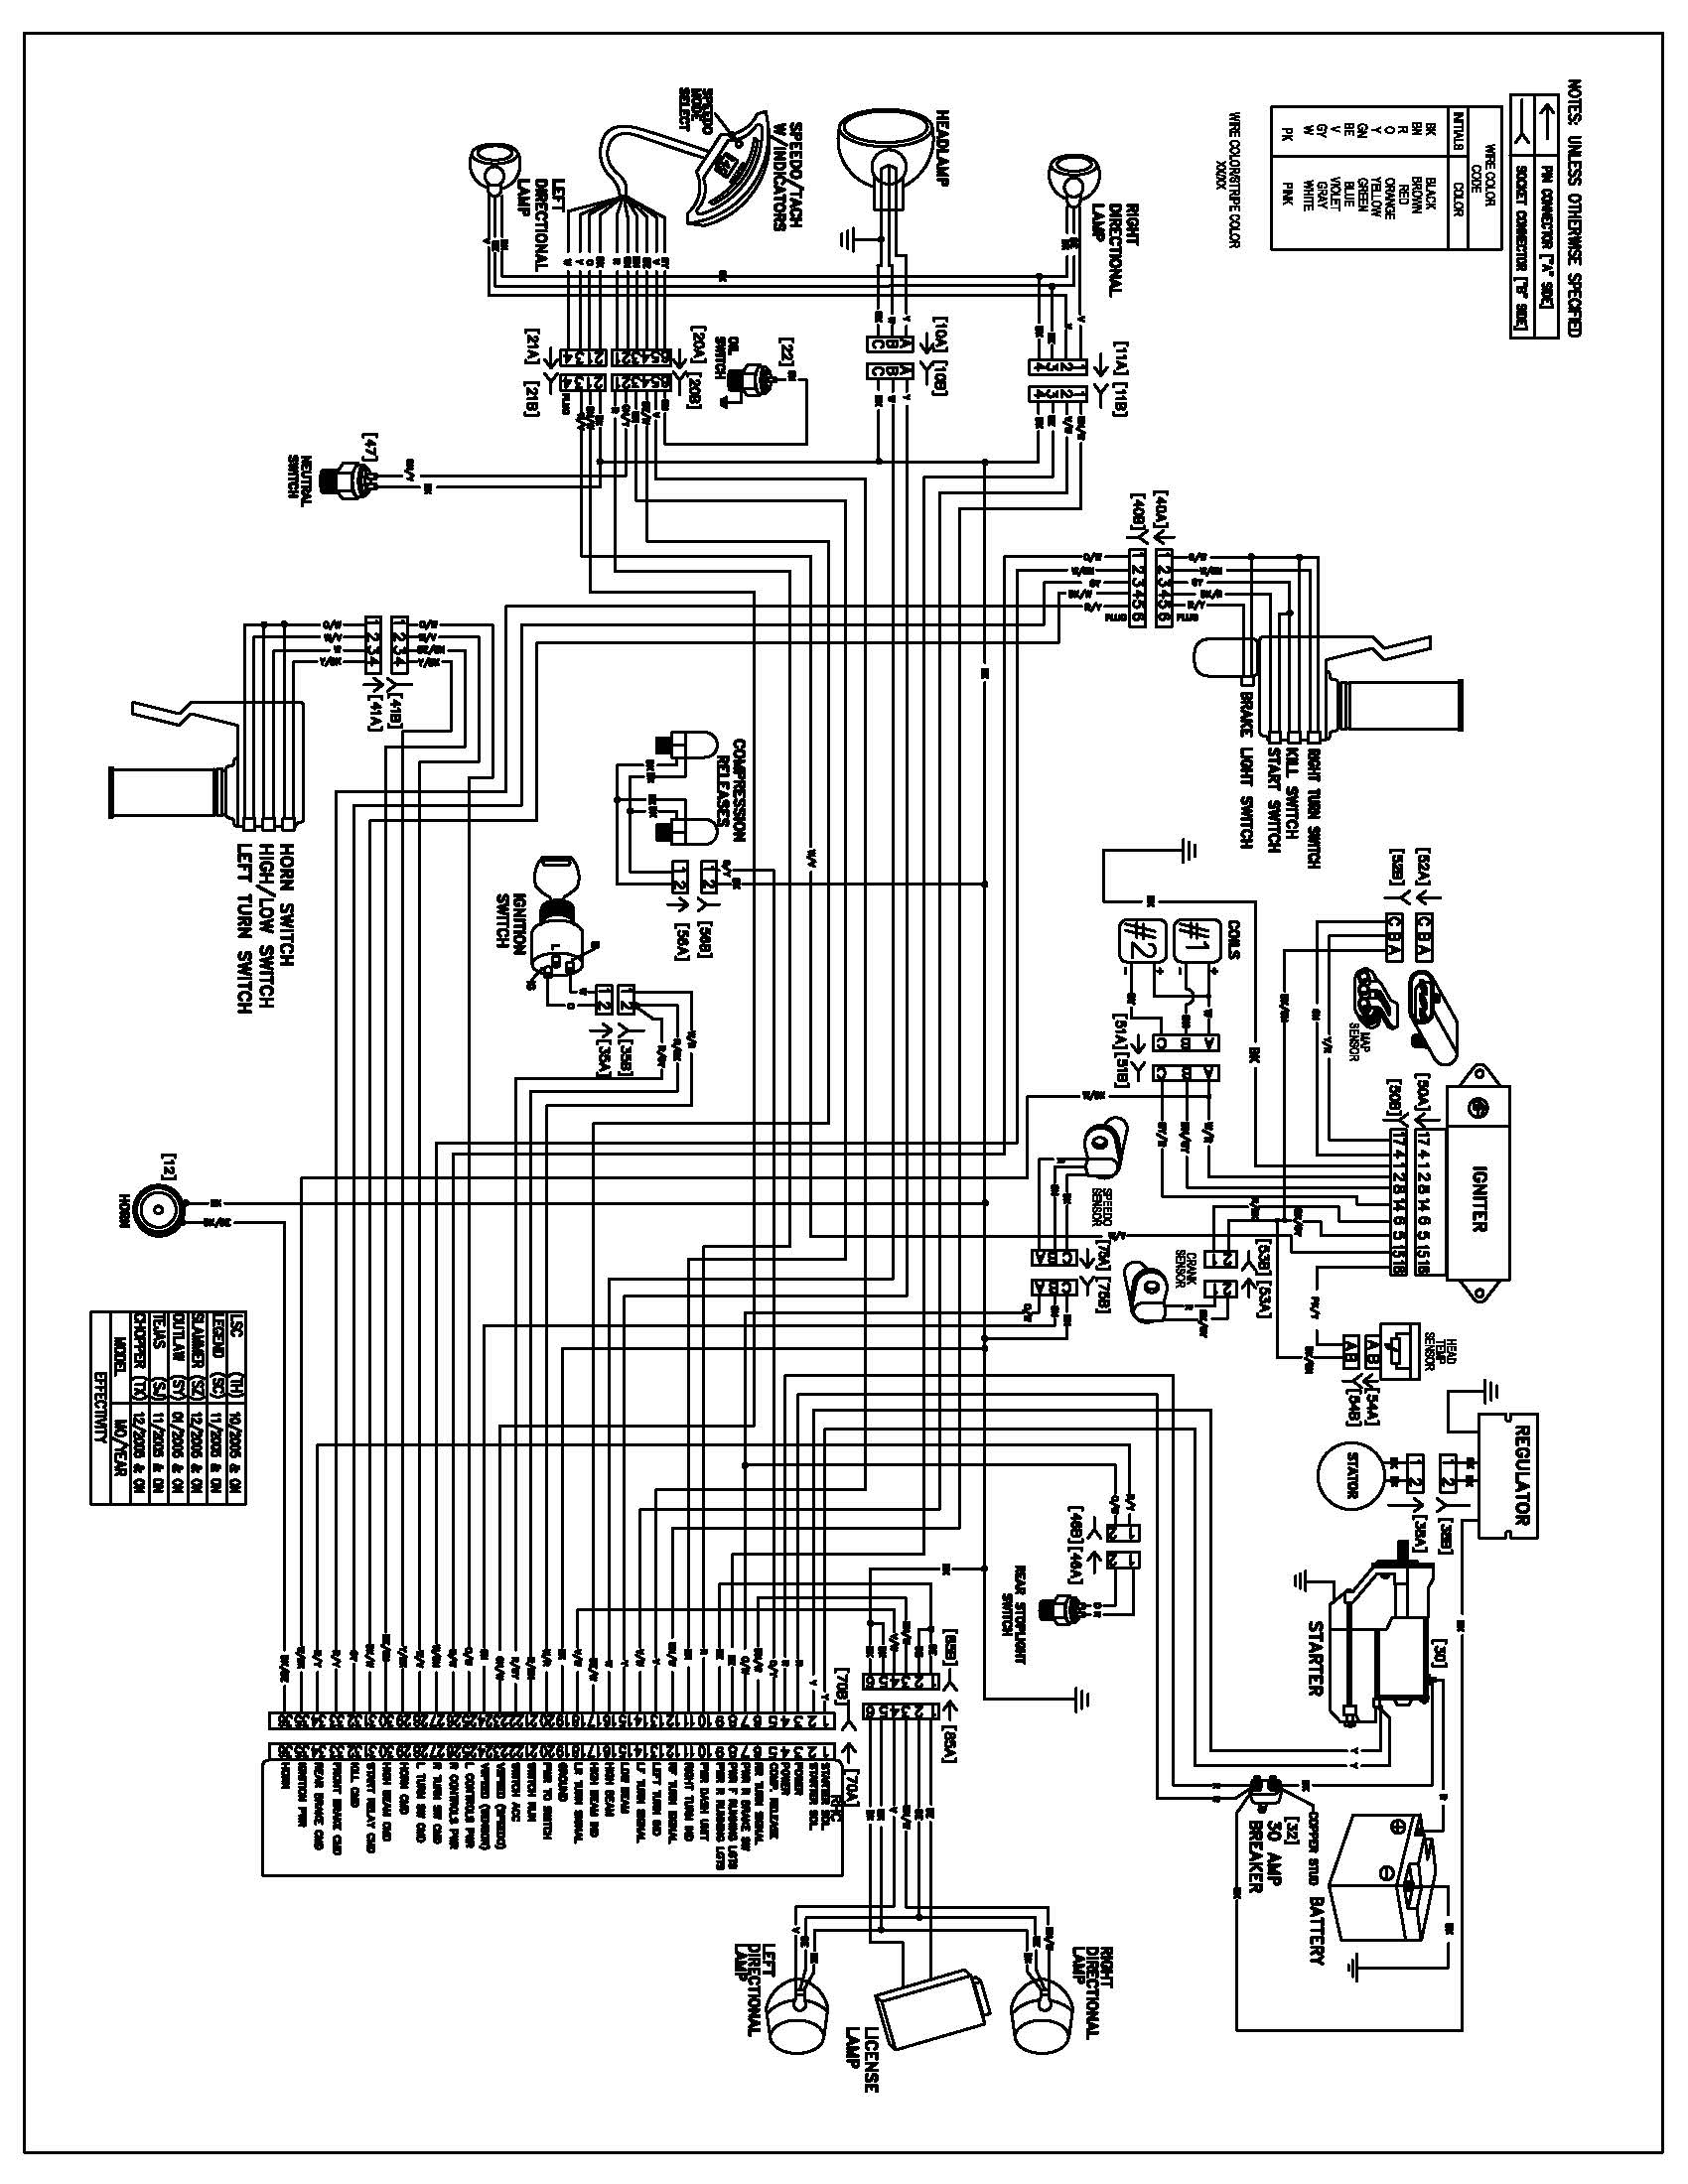 Thunderheart Wiring Harness Library Diagram Ref Ask Your Own Question